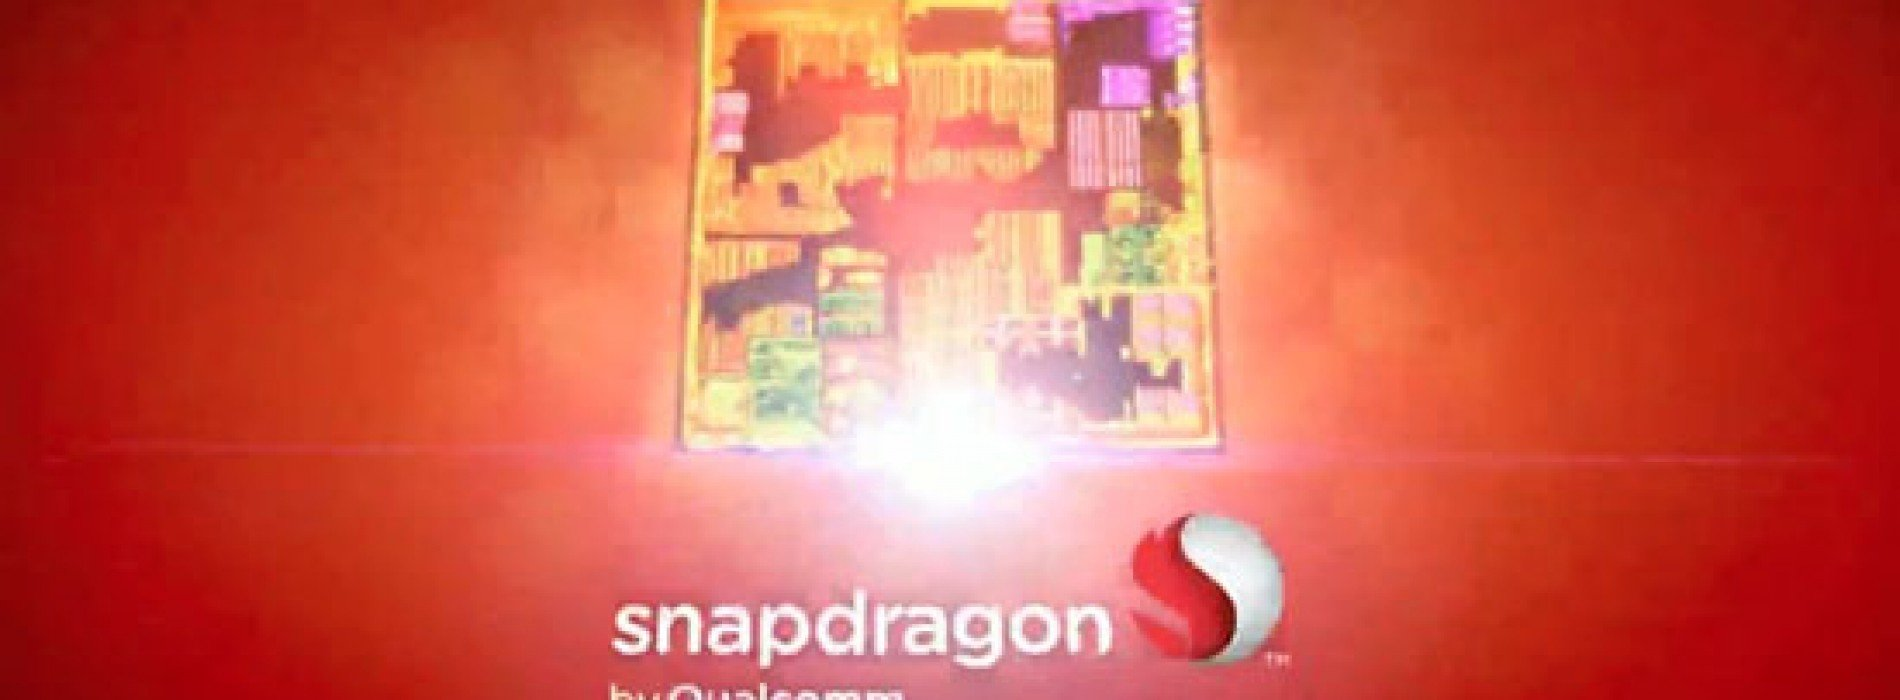 LG teases new quad-core Snapdragon device with site & video